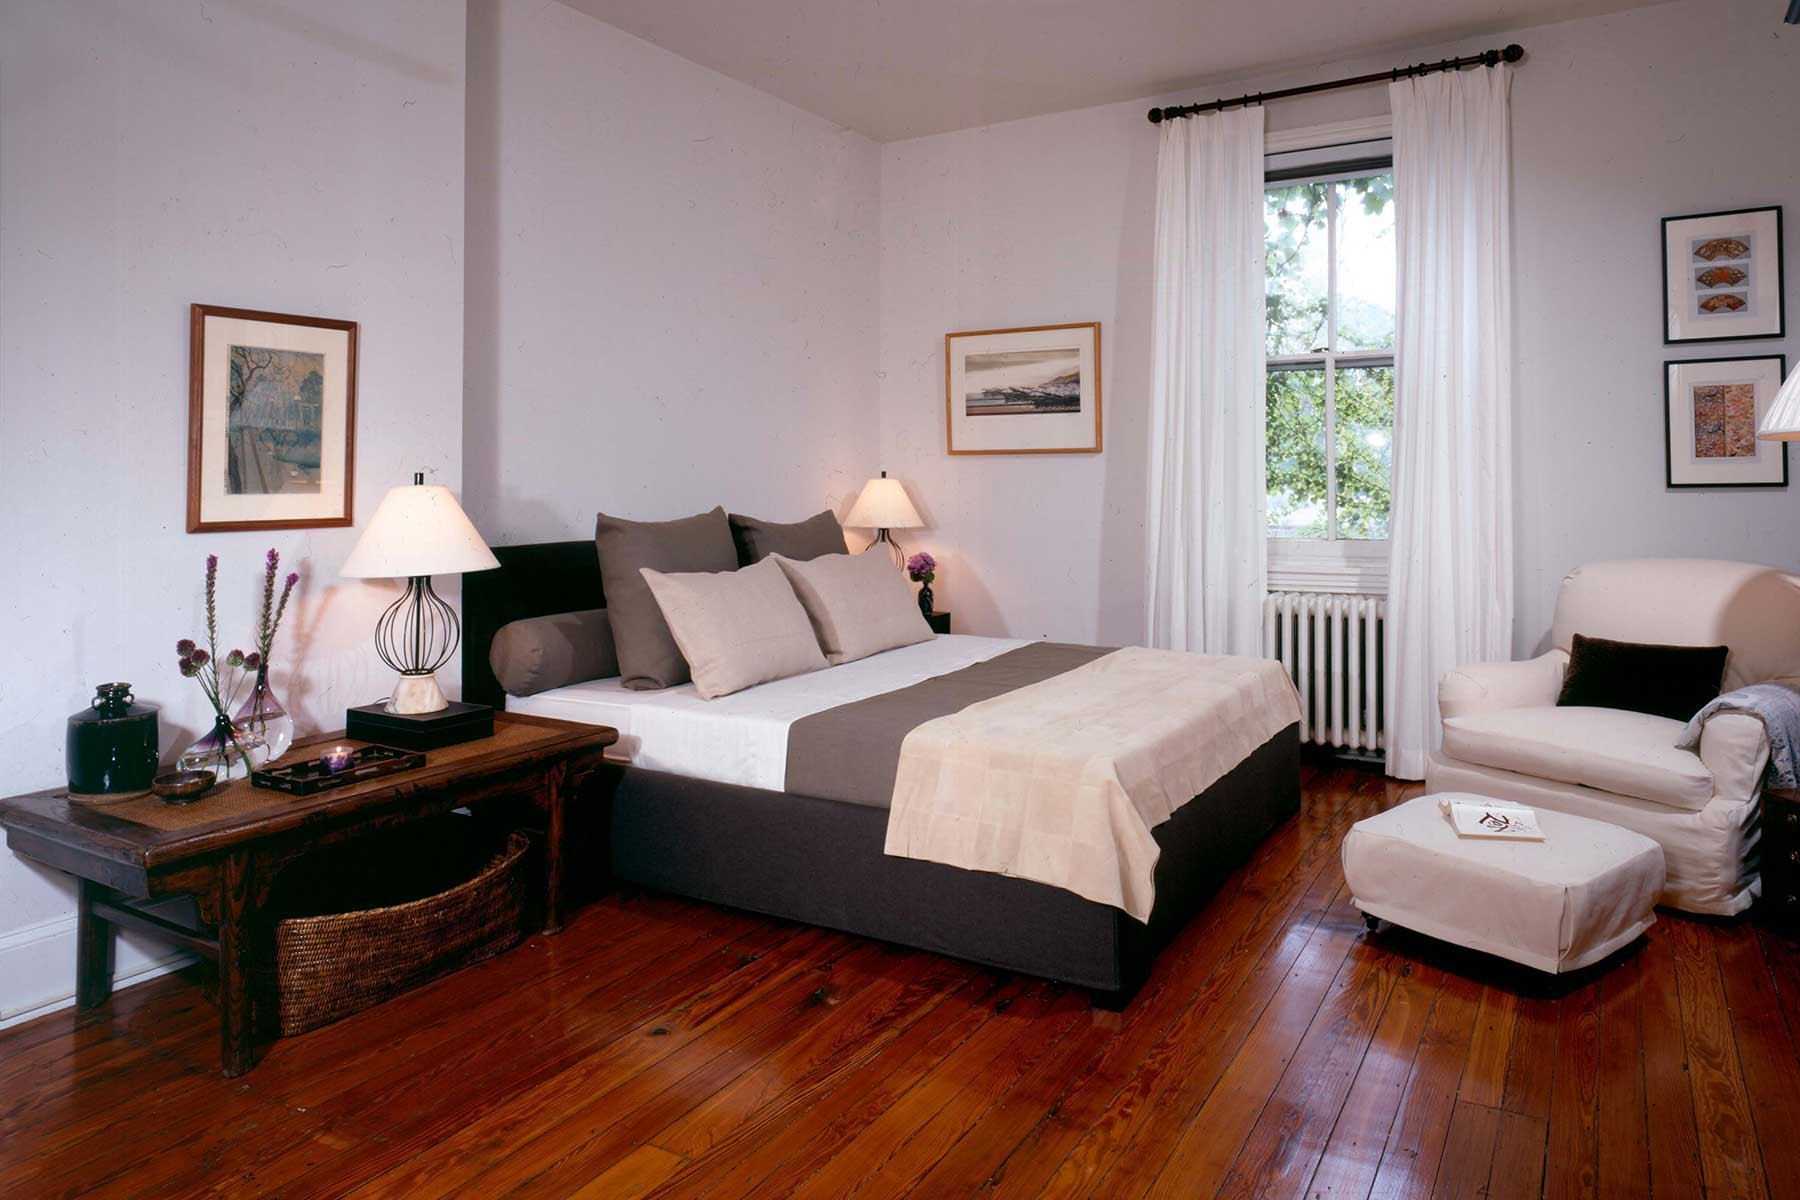 06-guest-bed